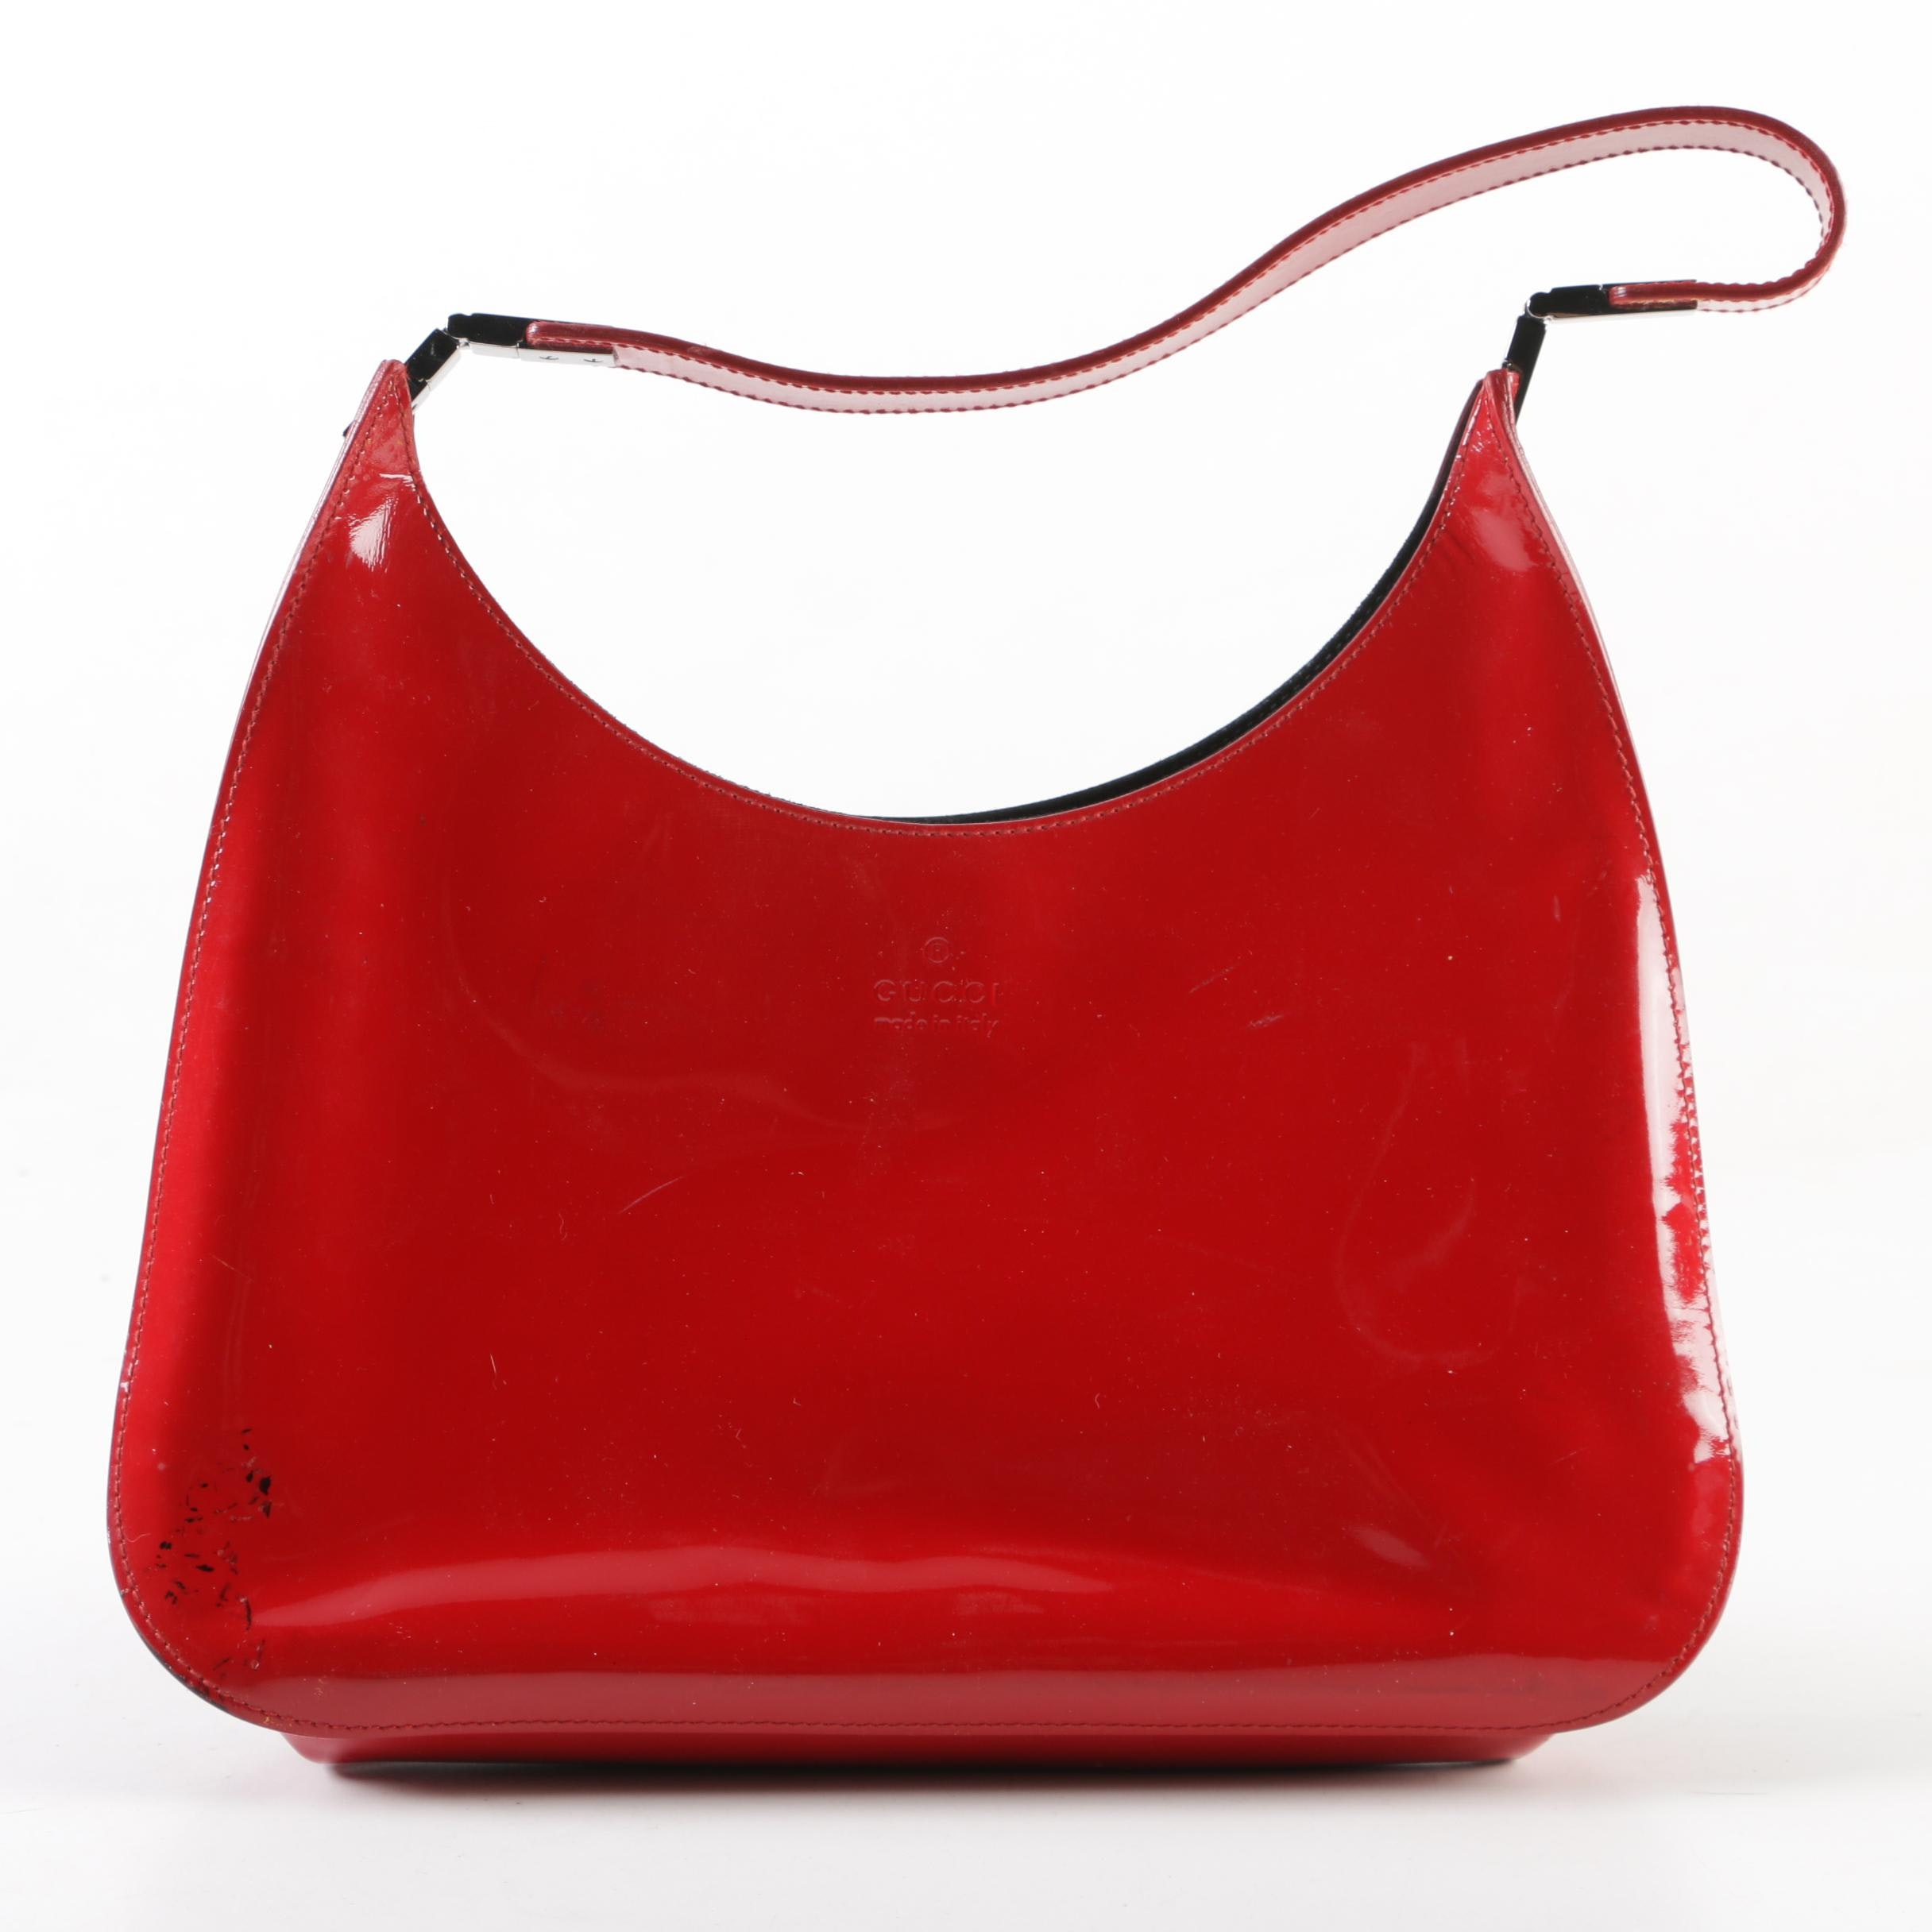 Gucci Red Patent Leather Hobo Bag, Made in Italy